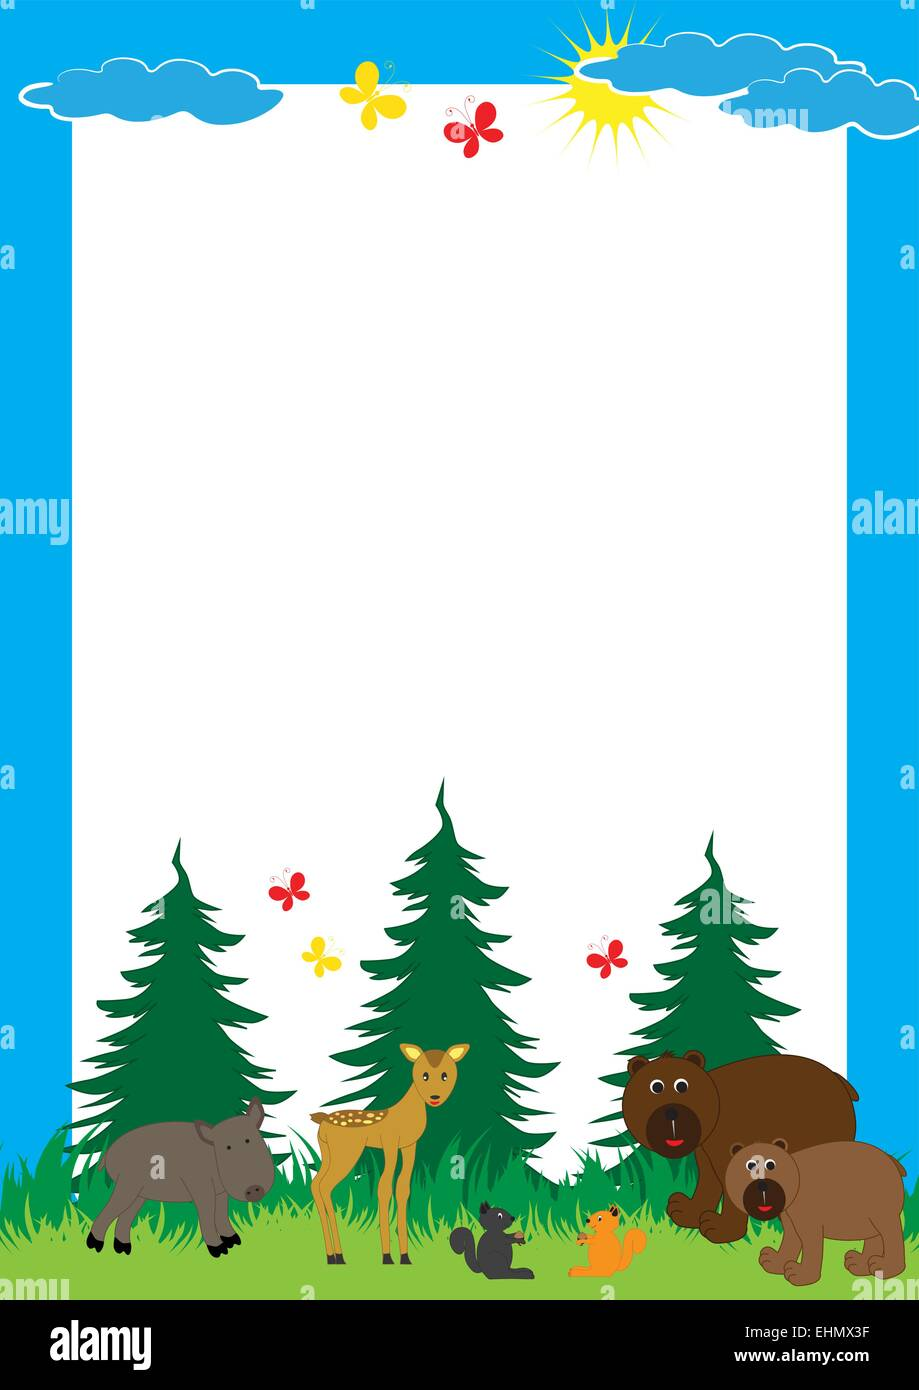 Wild Forest Animals Group Cartoon Imágenes De Stock & Wild Forest ...